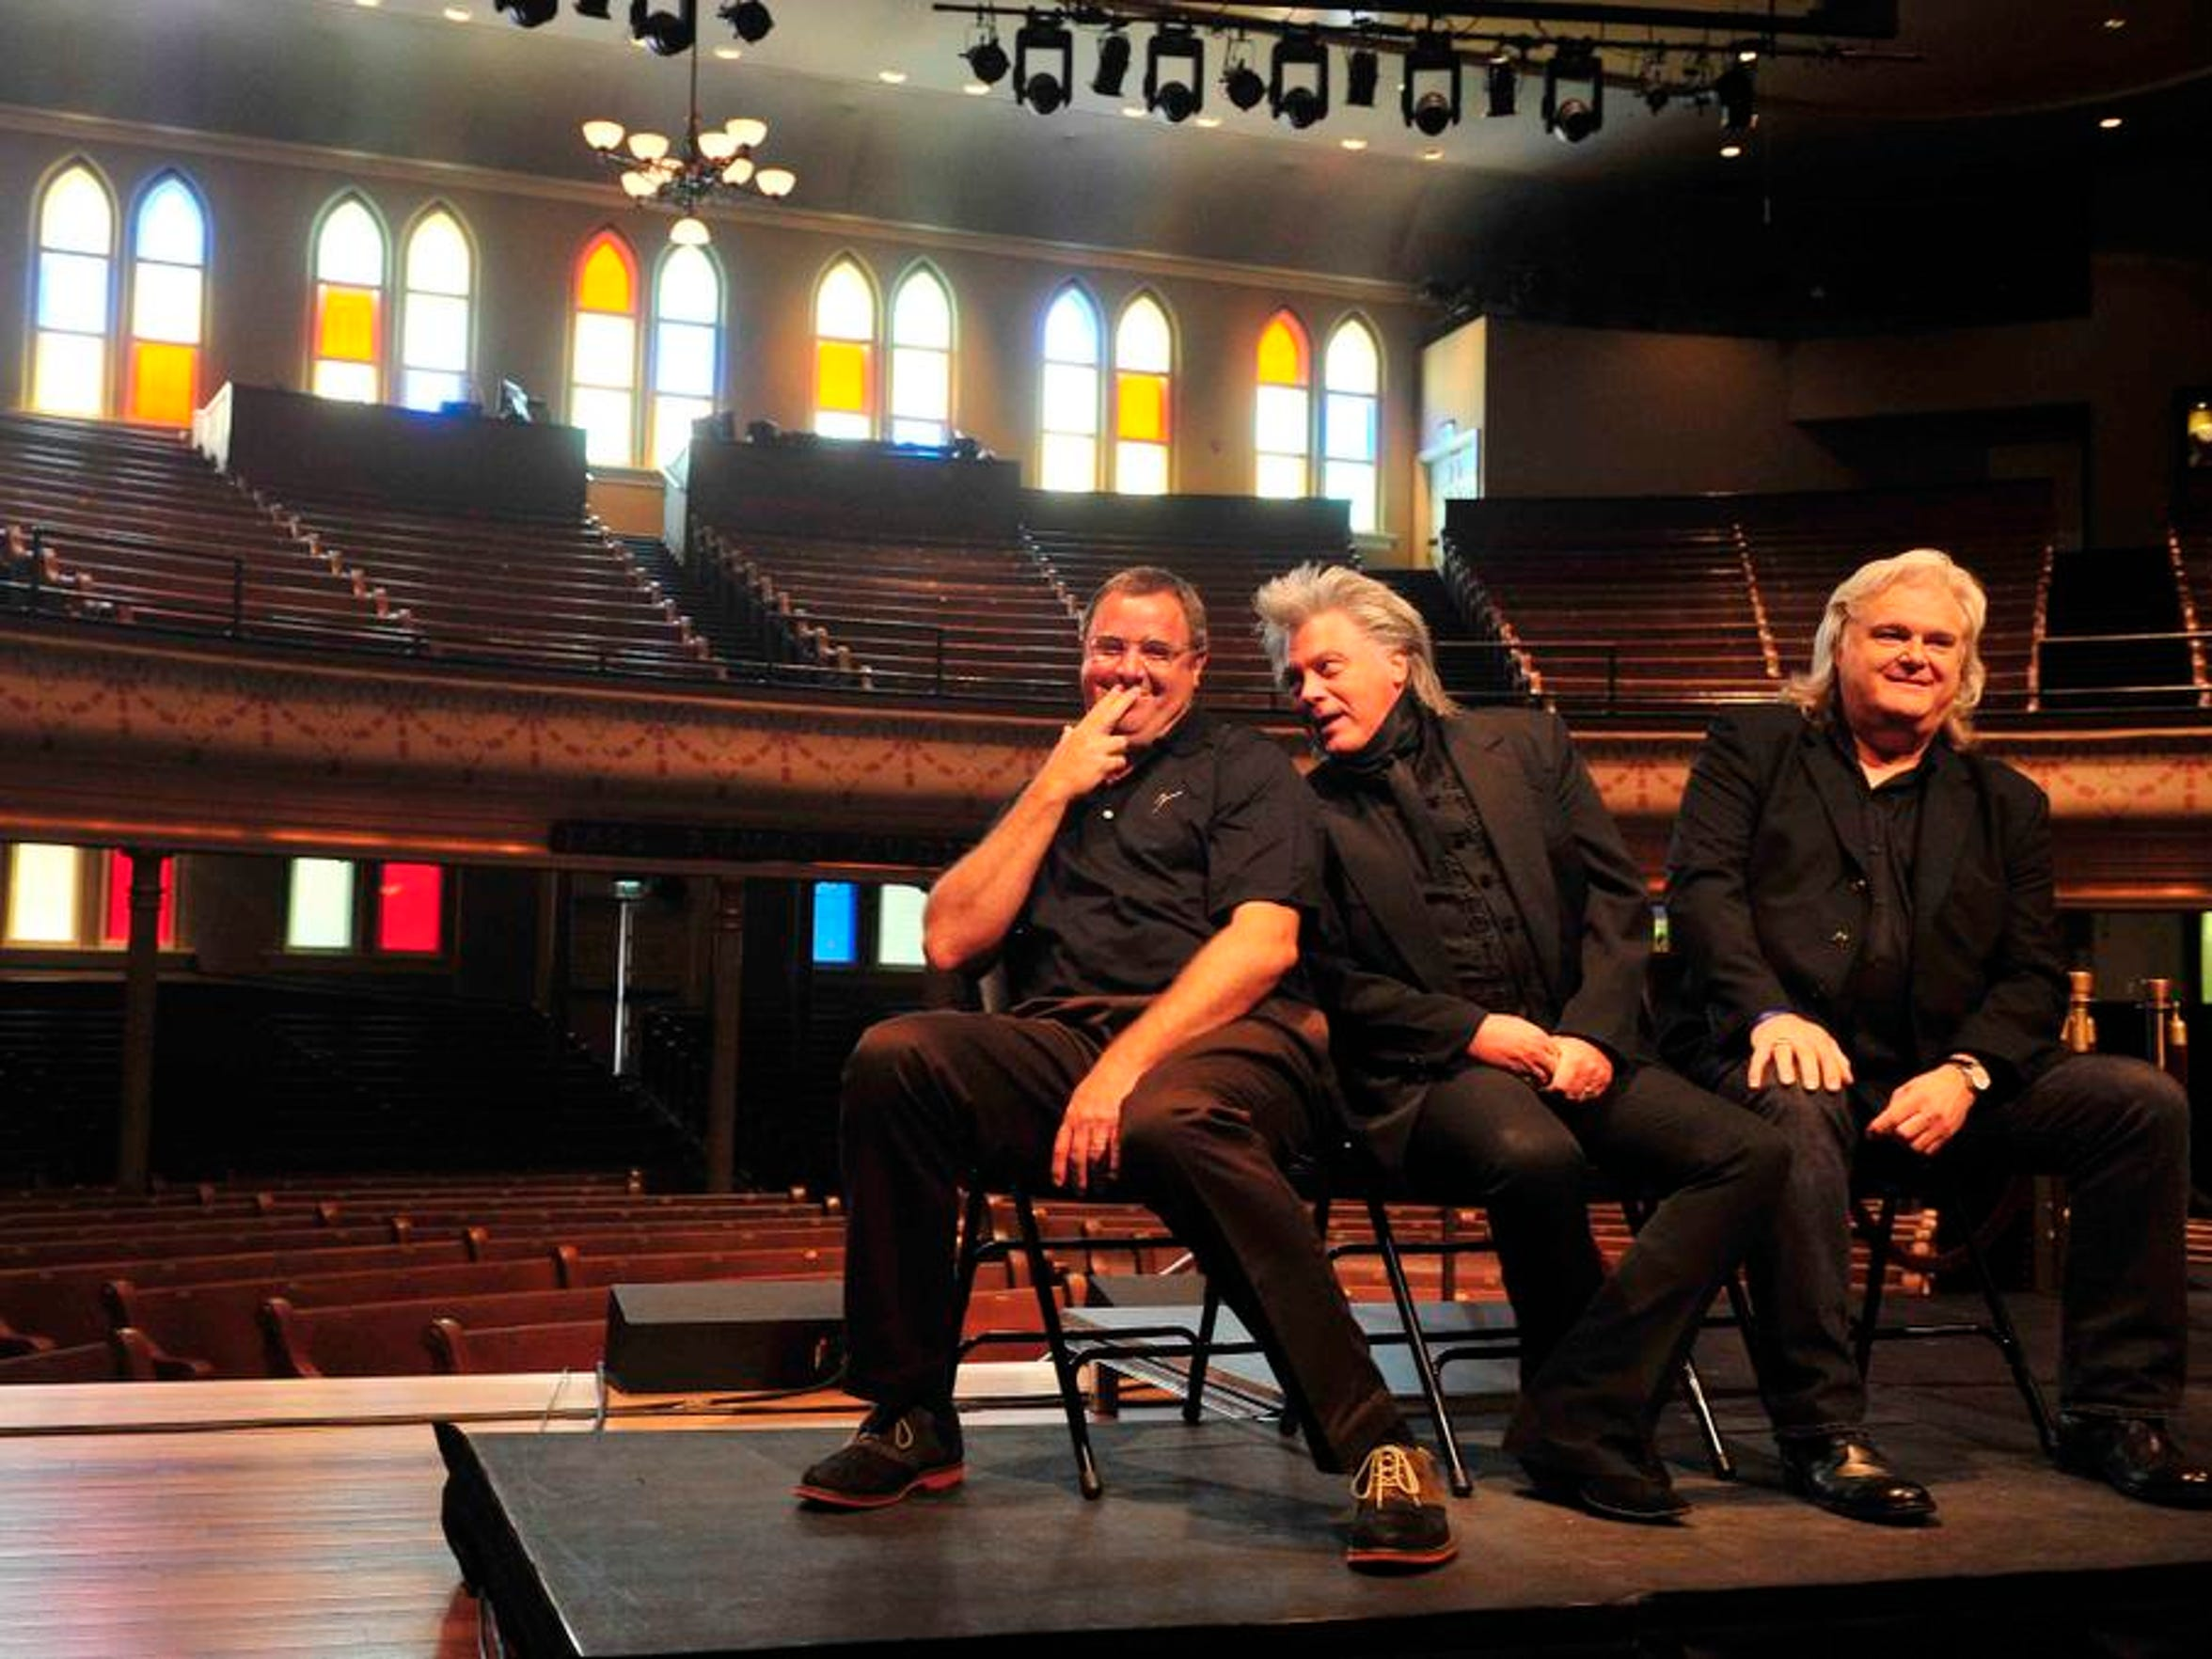 Vince Gill, Marty Stuart  and Ricky Skaggs listen during an expansion announcement at the Ryman in downtown Nashville, Tenn. on June 26, 2014.